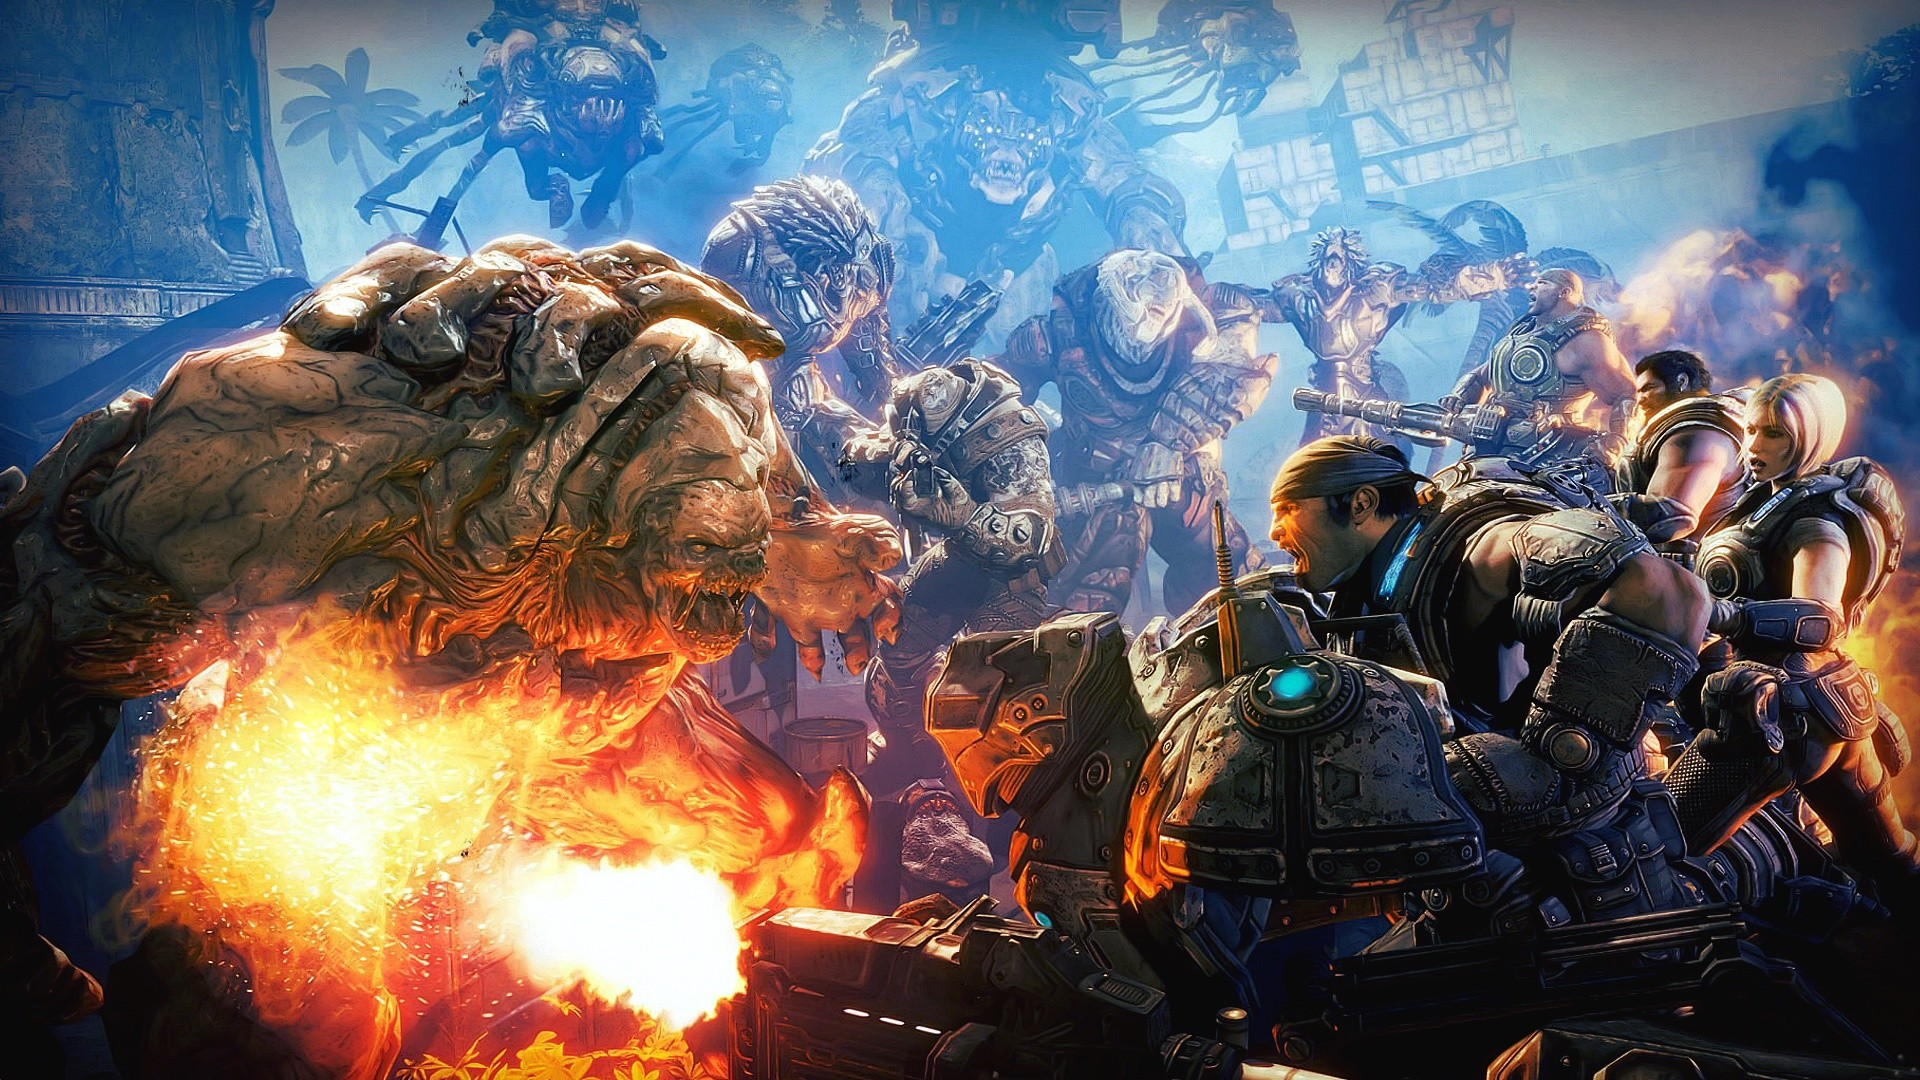 1920x1080 Gears of War 3 Battle Wallpapers